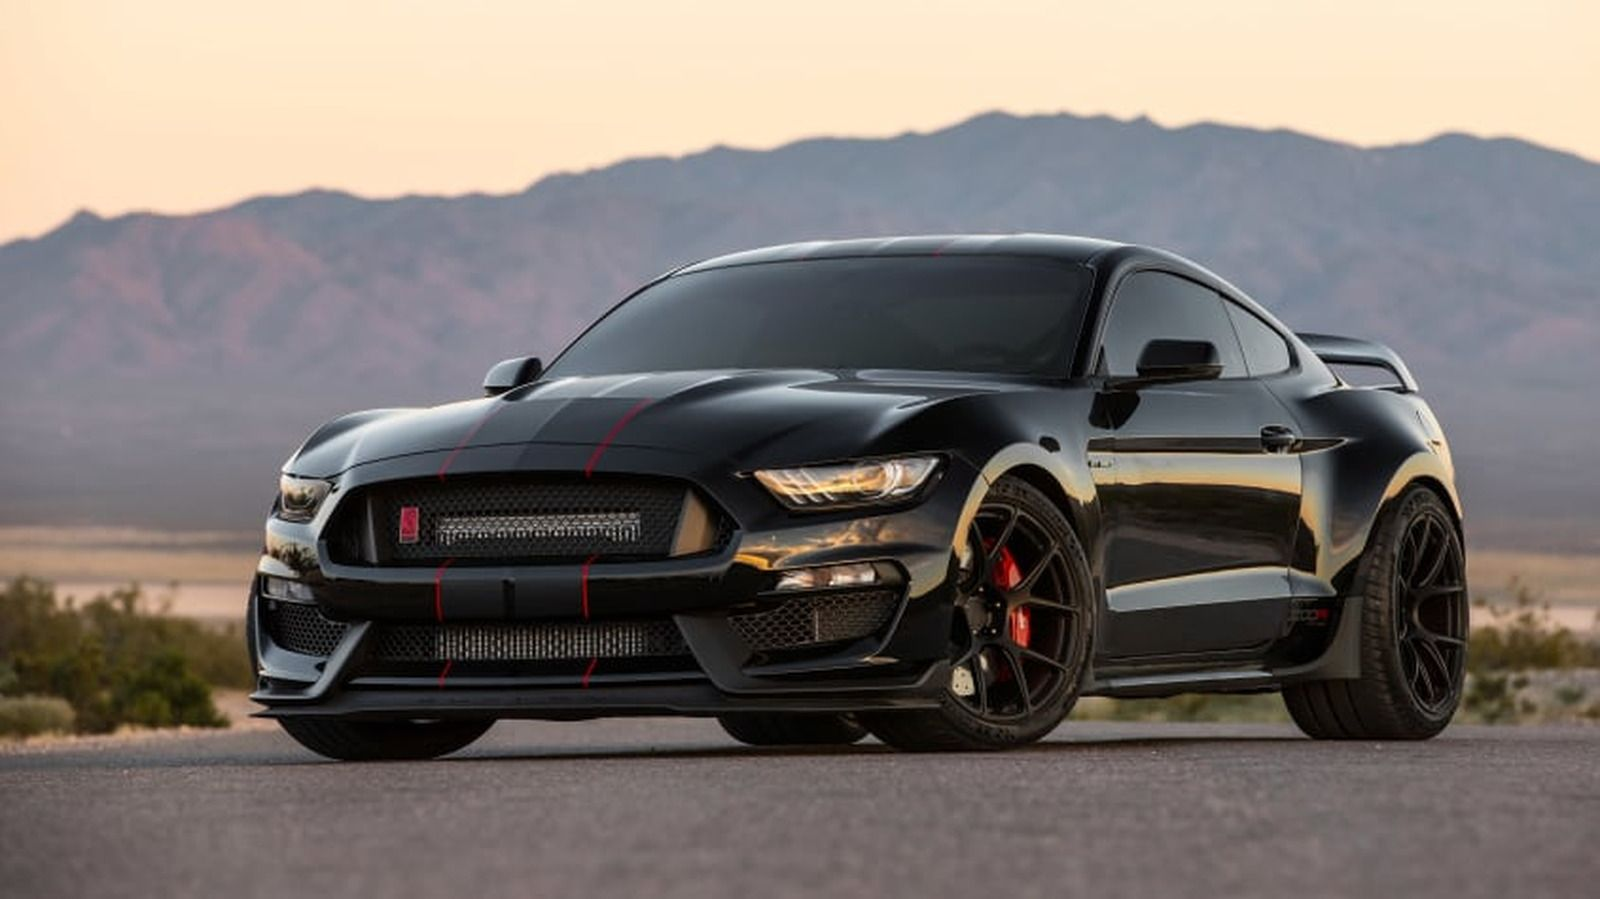 Ford Mustang Shelby Gt350 Twin Turbo By Fathouse In 2020 Ford Mustang Shelby Ford Mustang Mustang Shelby